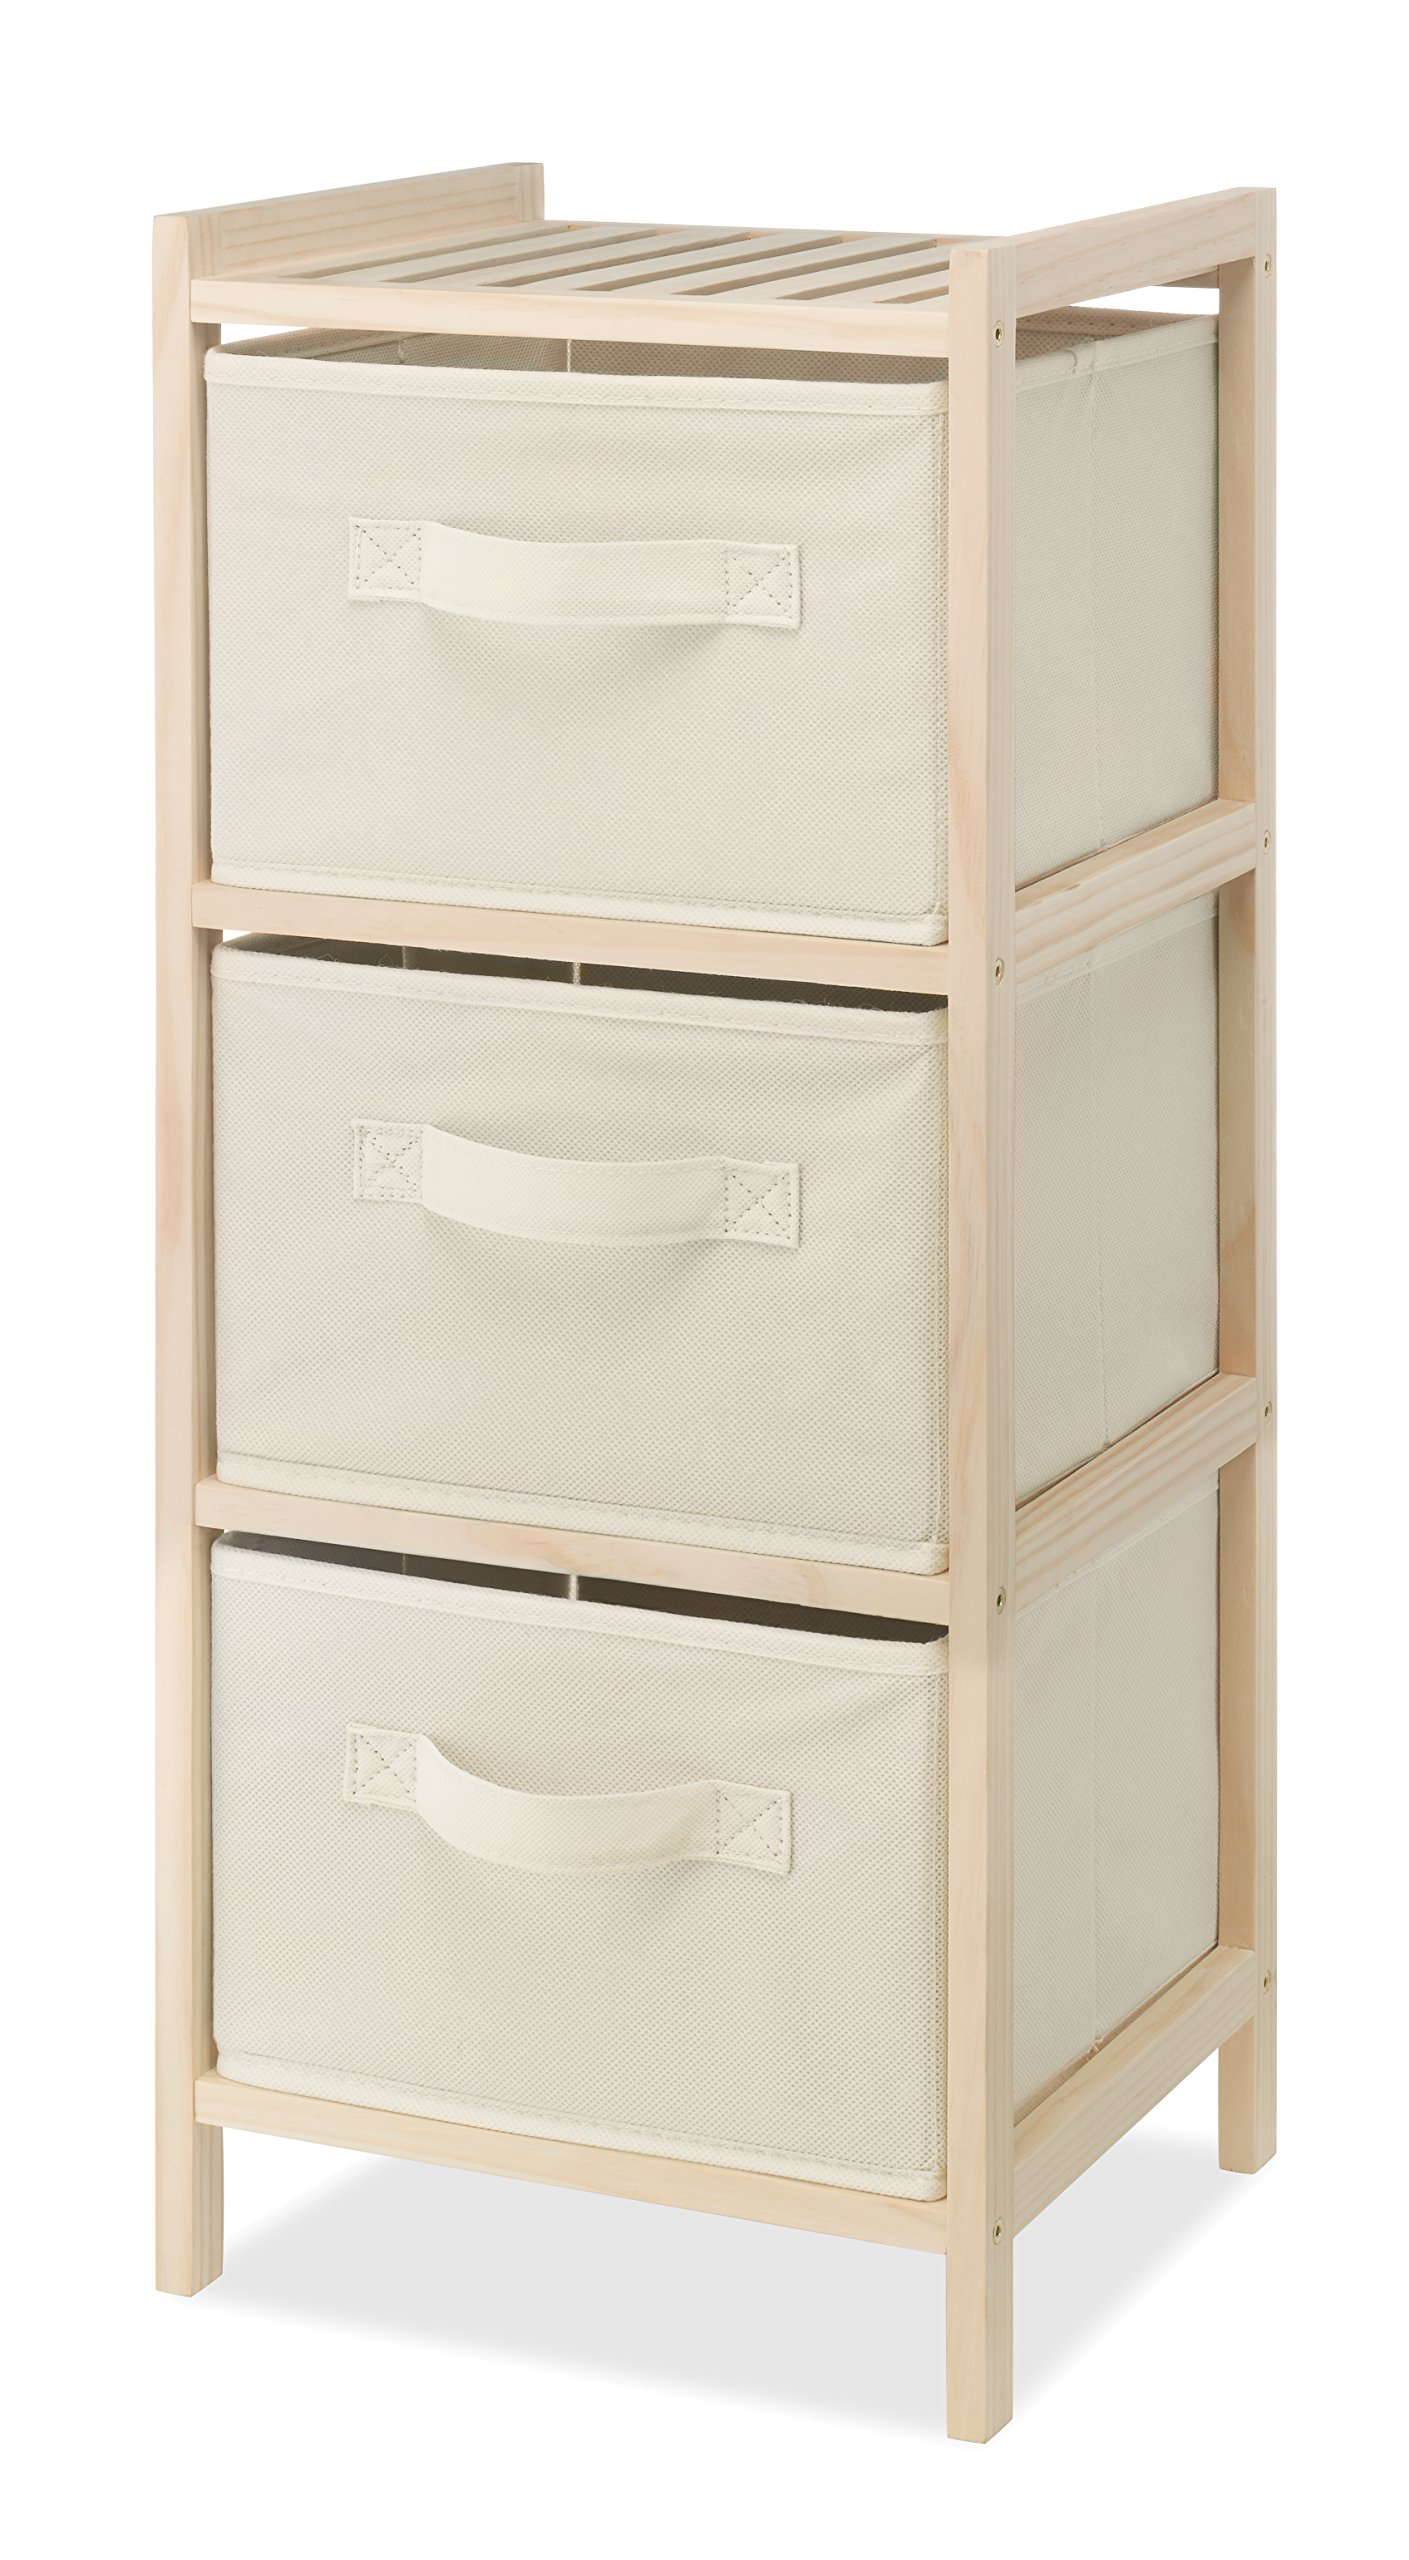 Whitmor 3 Drawer Wood Chest - Compact Design - Pull Out Fabric Bins - Natural Pine by Whitmor